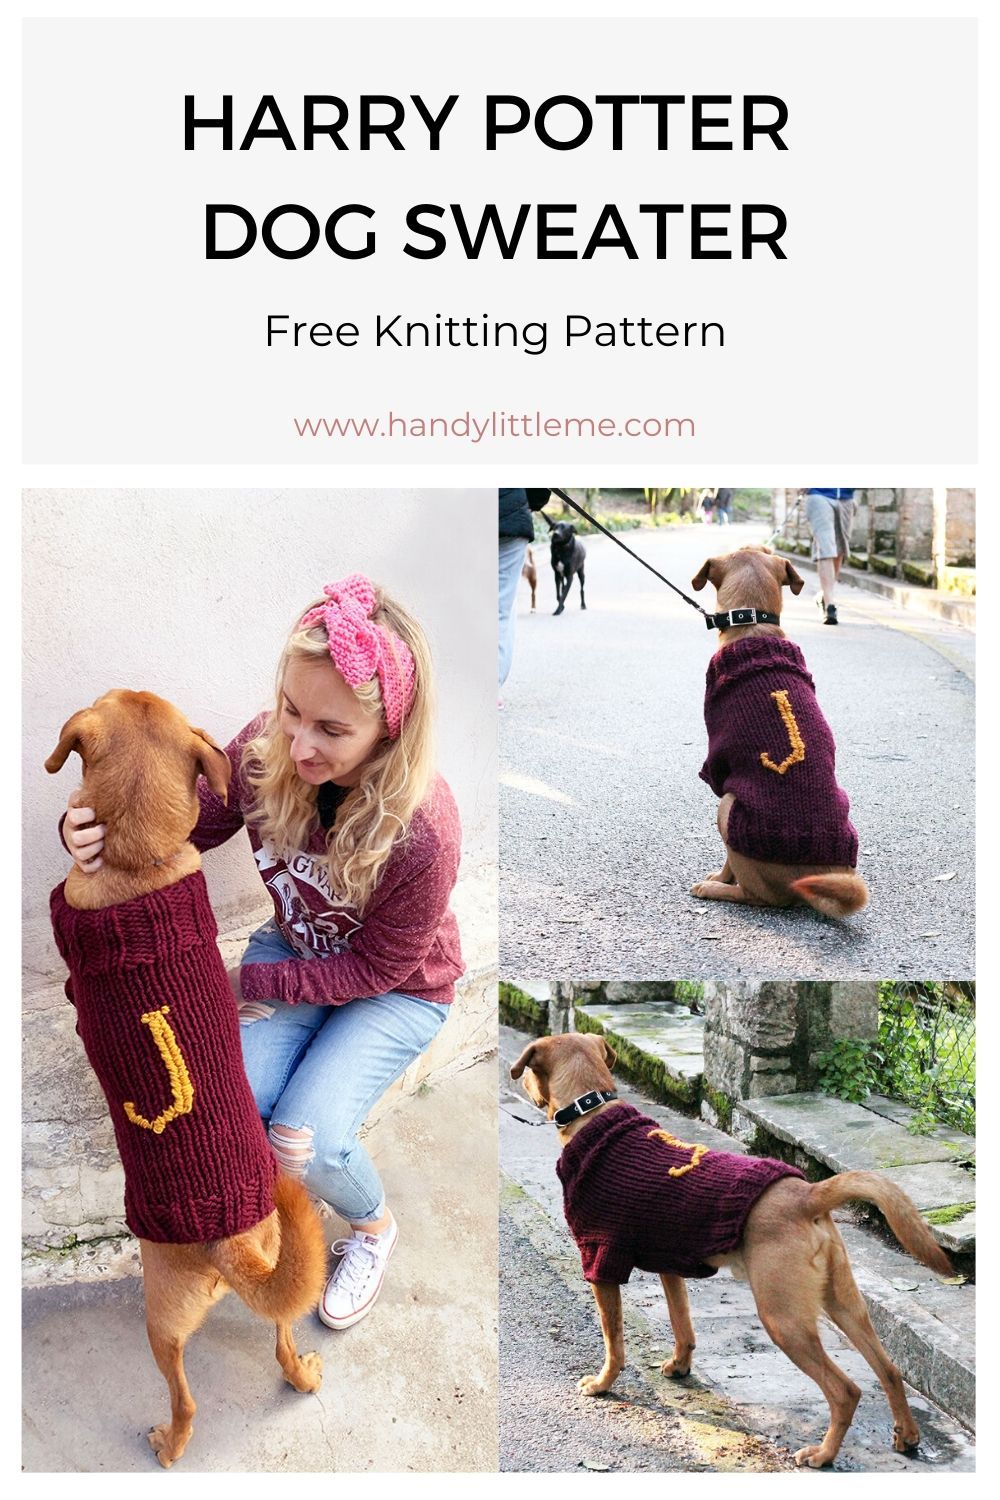 Harry Potter dog sweater pattern